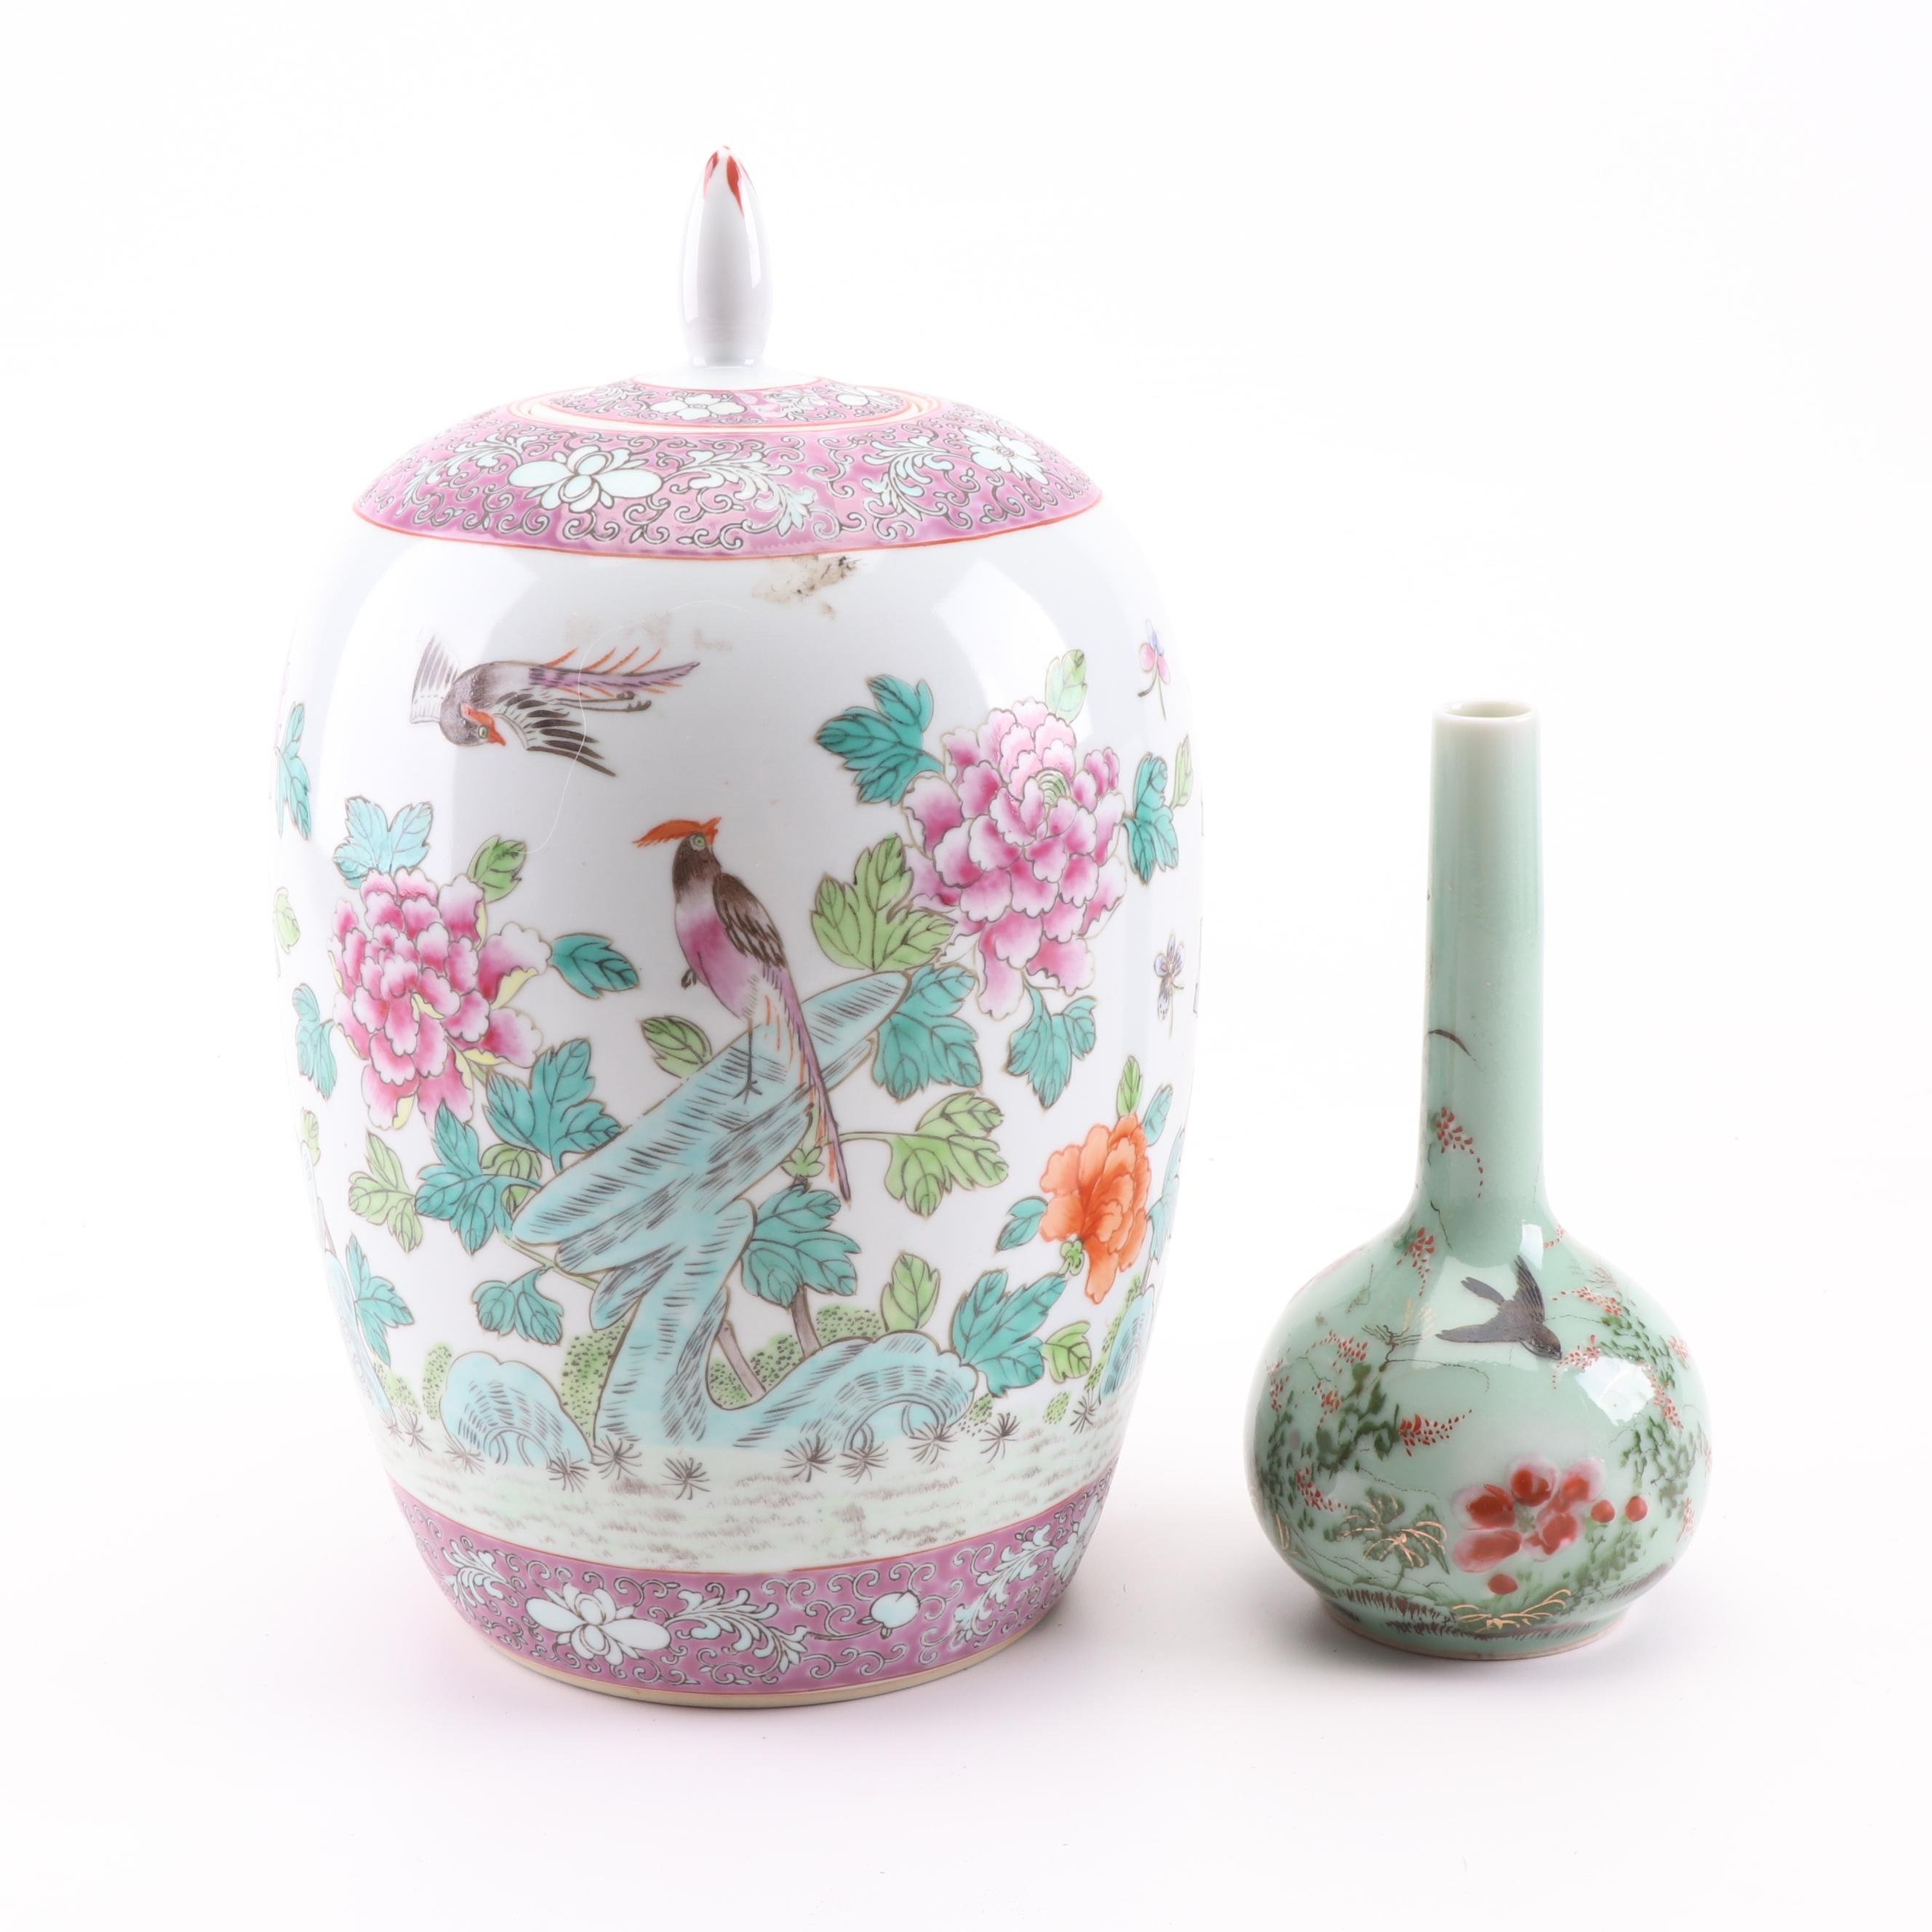 Chinese Celadon Ceramic Bud Vase and Lidded Jar